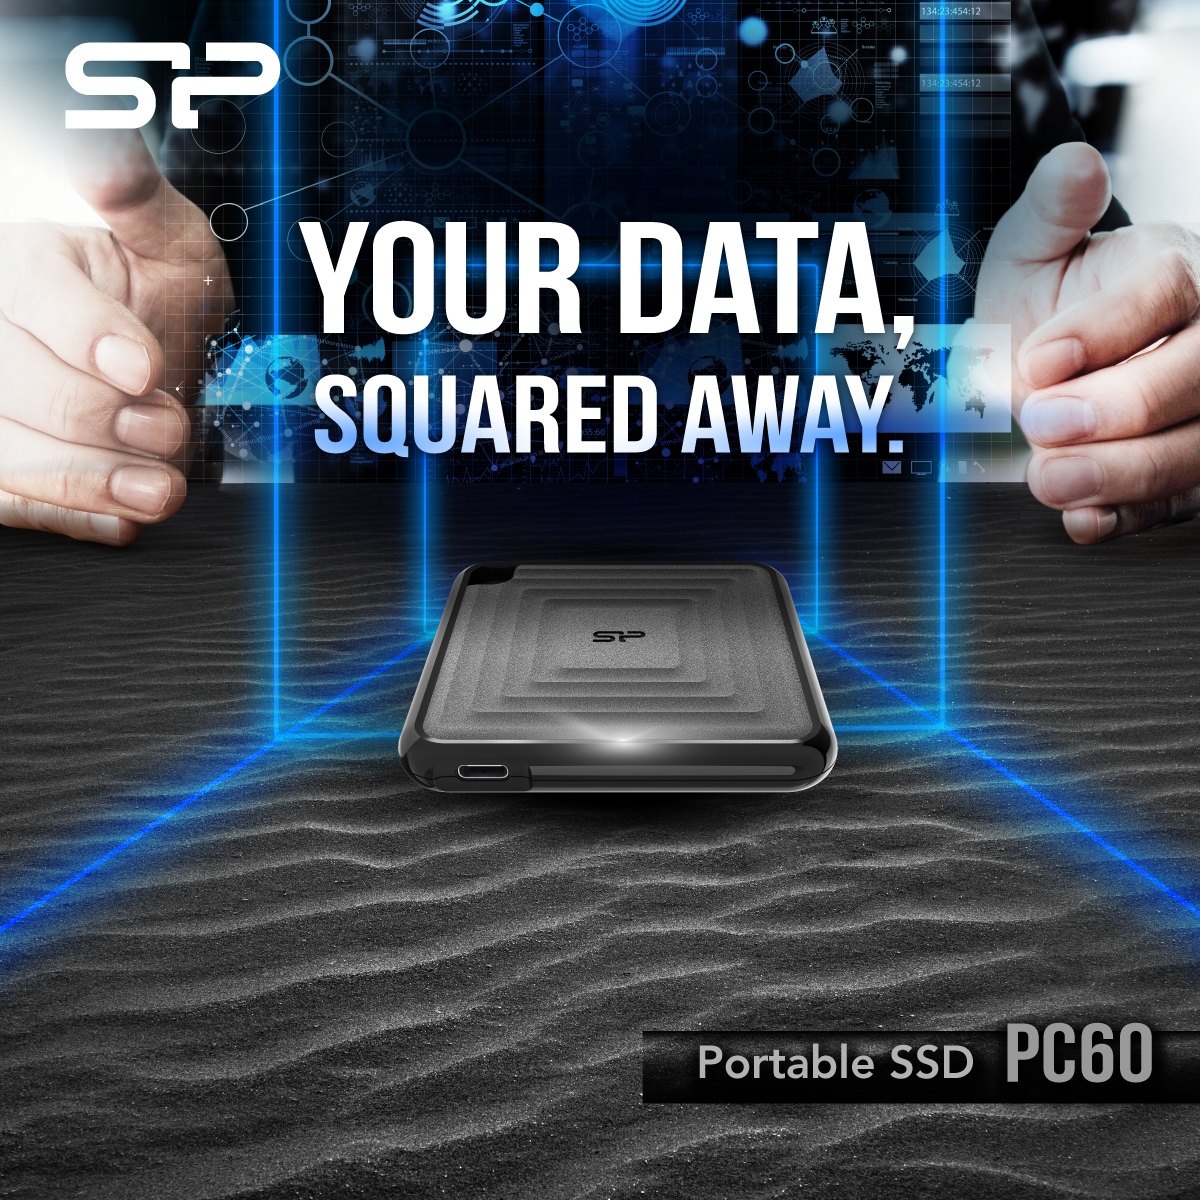 Silicon Power Releases Its Thinnest Portable SSD Yet